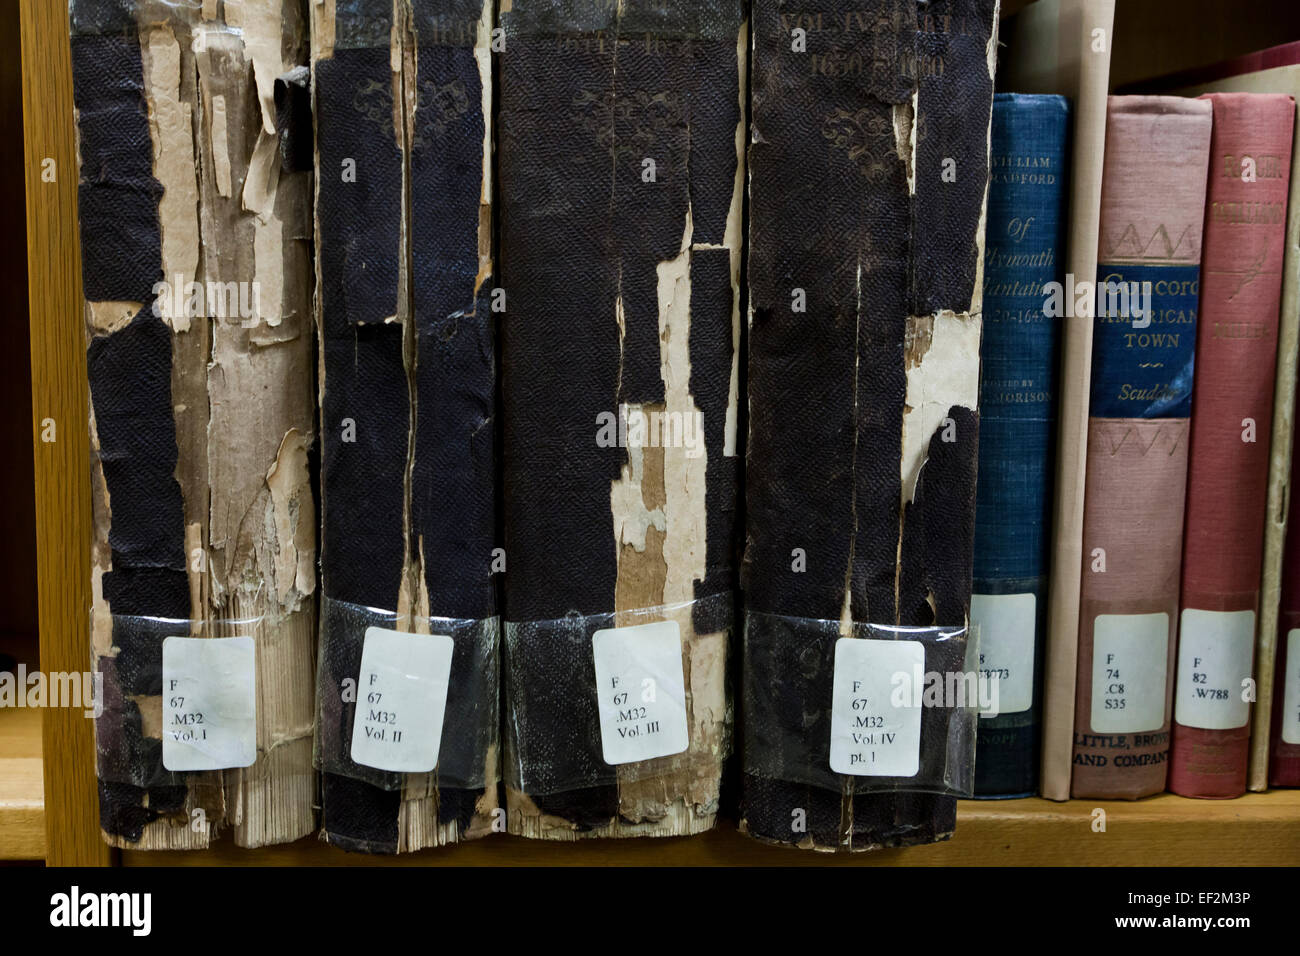 Frayed spine of old books on library shelf - USA - Stock Image